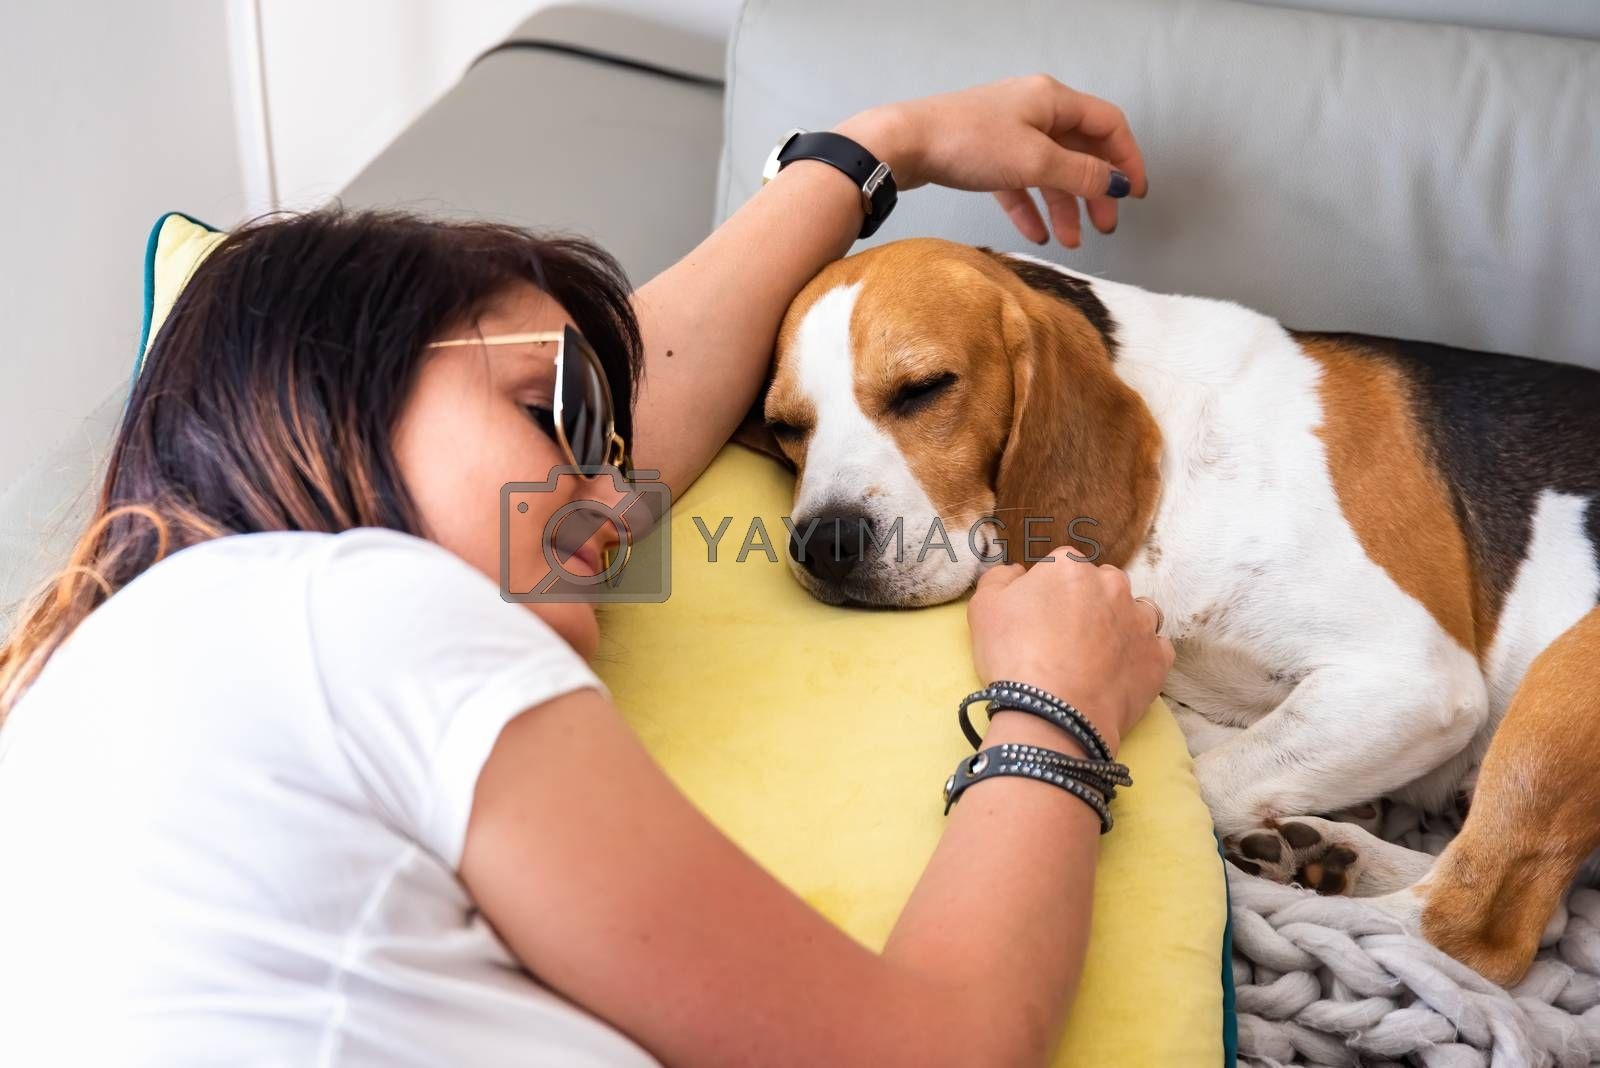 Beagle dog sleeping next to womanon sofa. Pets with people friendship.